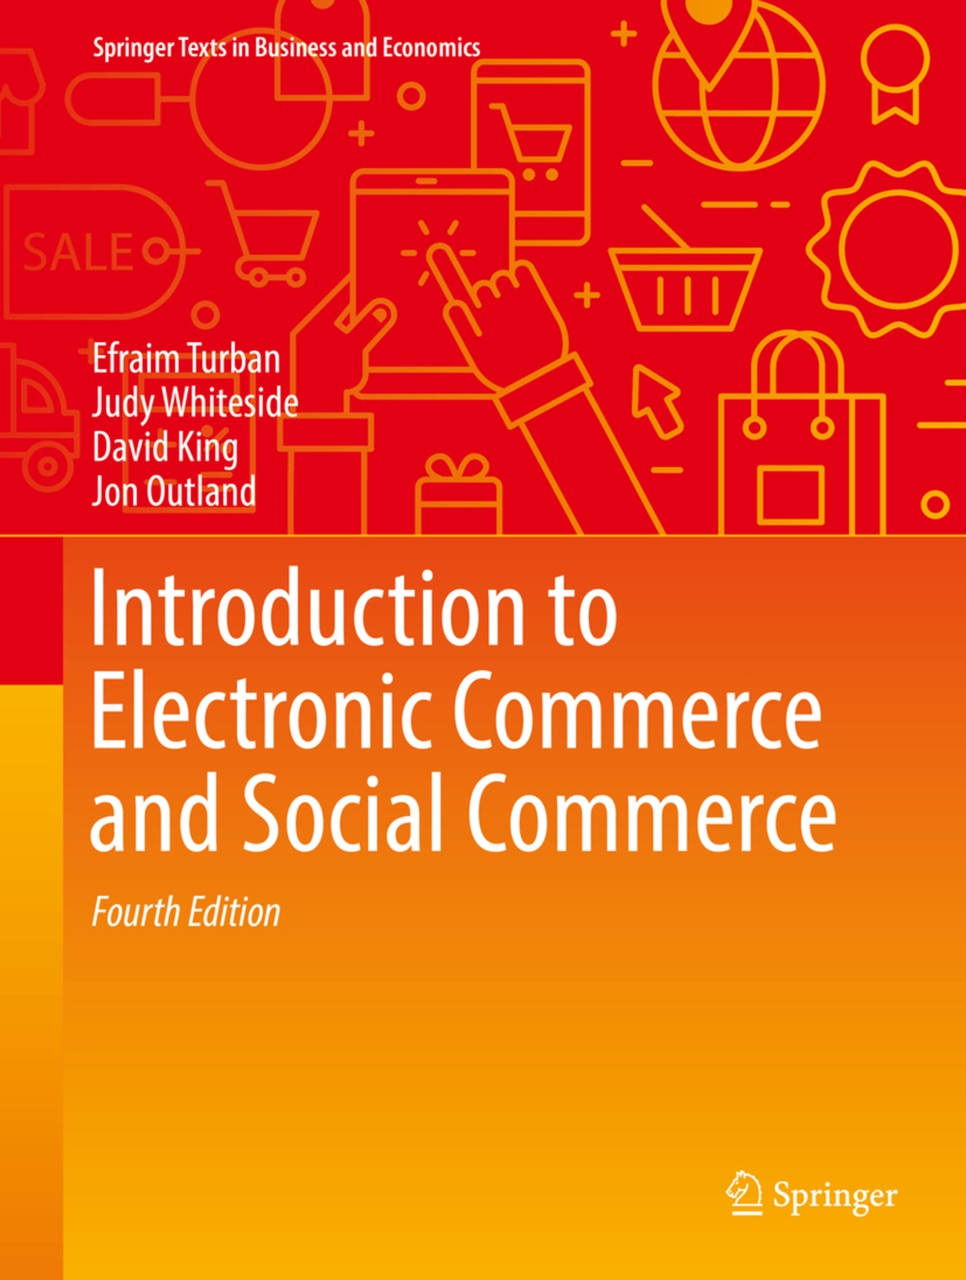 an analysis of edward caputos views on electronic commerce International journal of electronic commerce mohan ramirez, edward 2016 discriminant validity testing in marketing: an analysis, causes for.